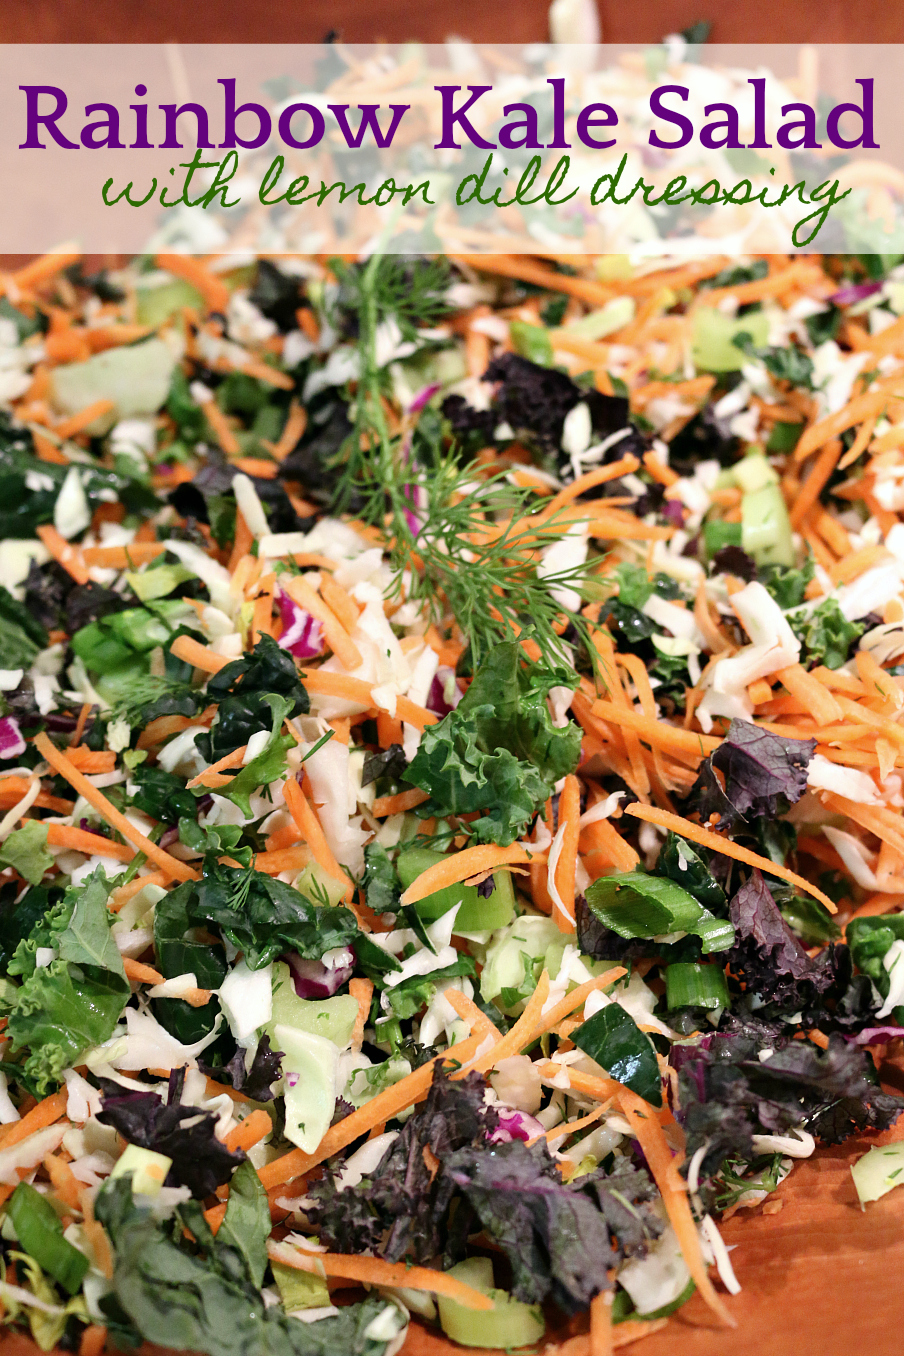 Healthy Rainbow Kale Salad with Lemon Dill Dressing Recipe | CeceliasGoodStuff.com | Good Food for Good People